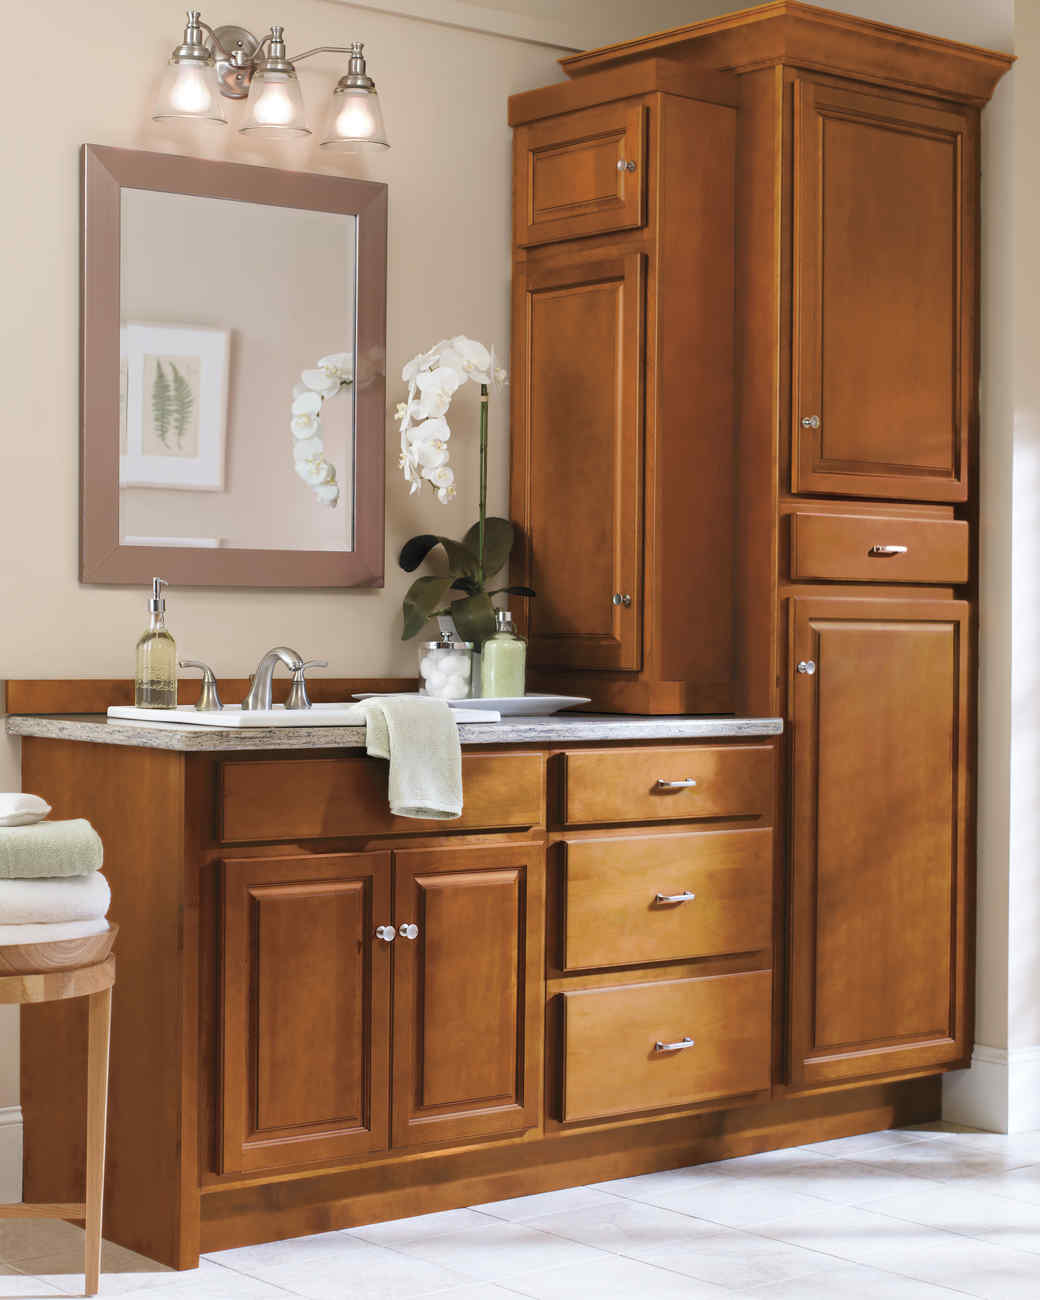 Martha Living Cabinet Solutions From The Home Depot